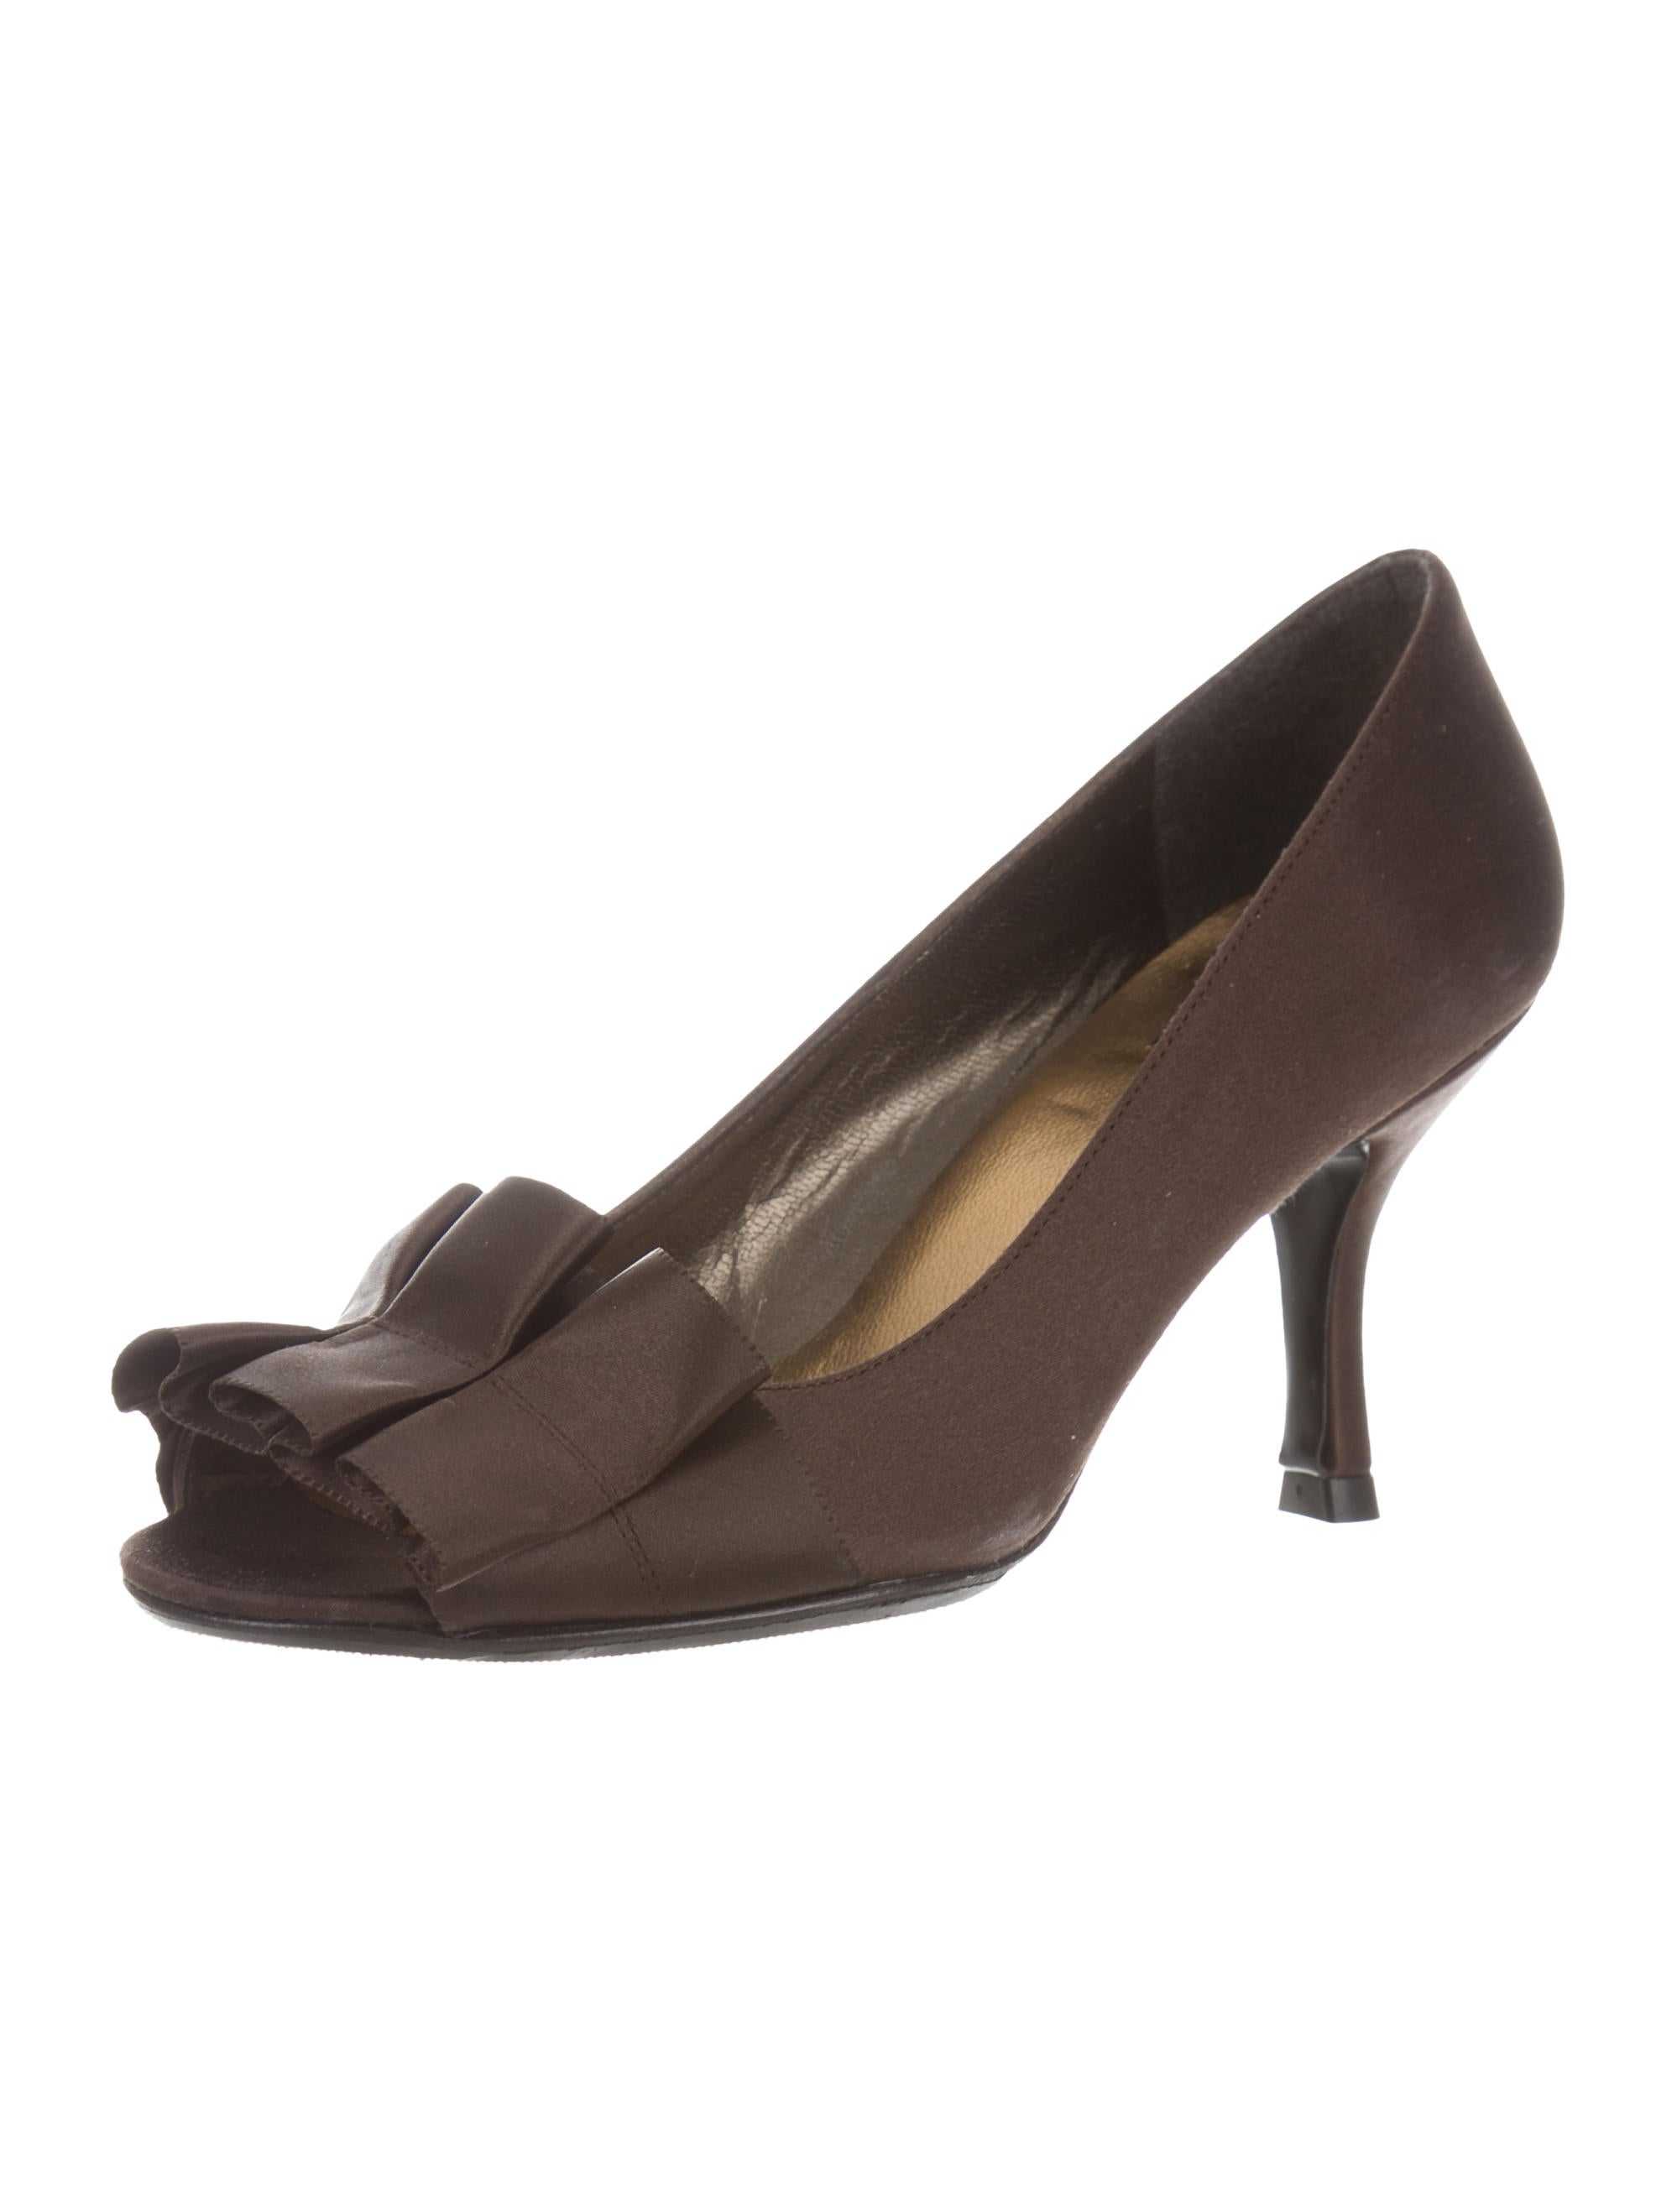 discount huge surprise free shipping outlet Stuart Weitzman Ruffle-Accented Peep-Toe Pumps high quality for sale 2014 cheap sale rRvmgsfb